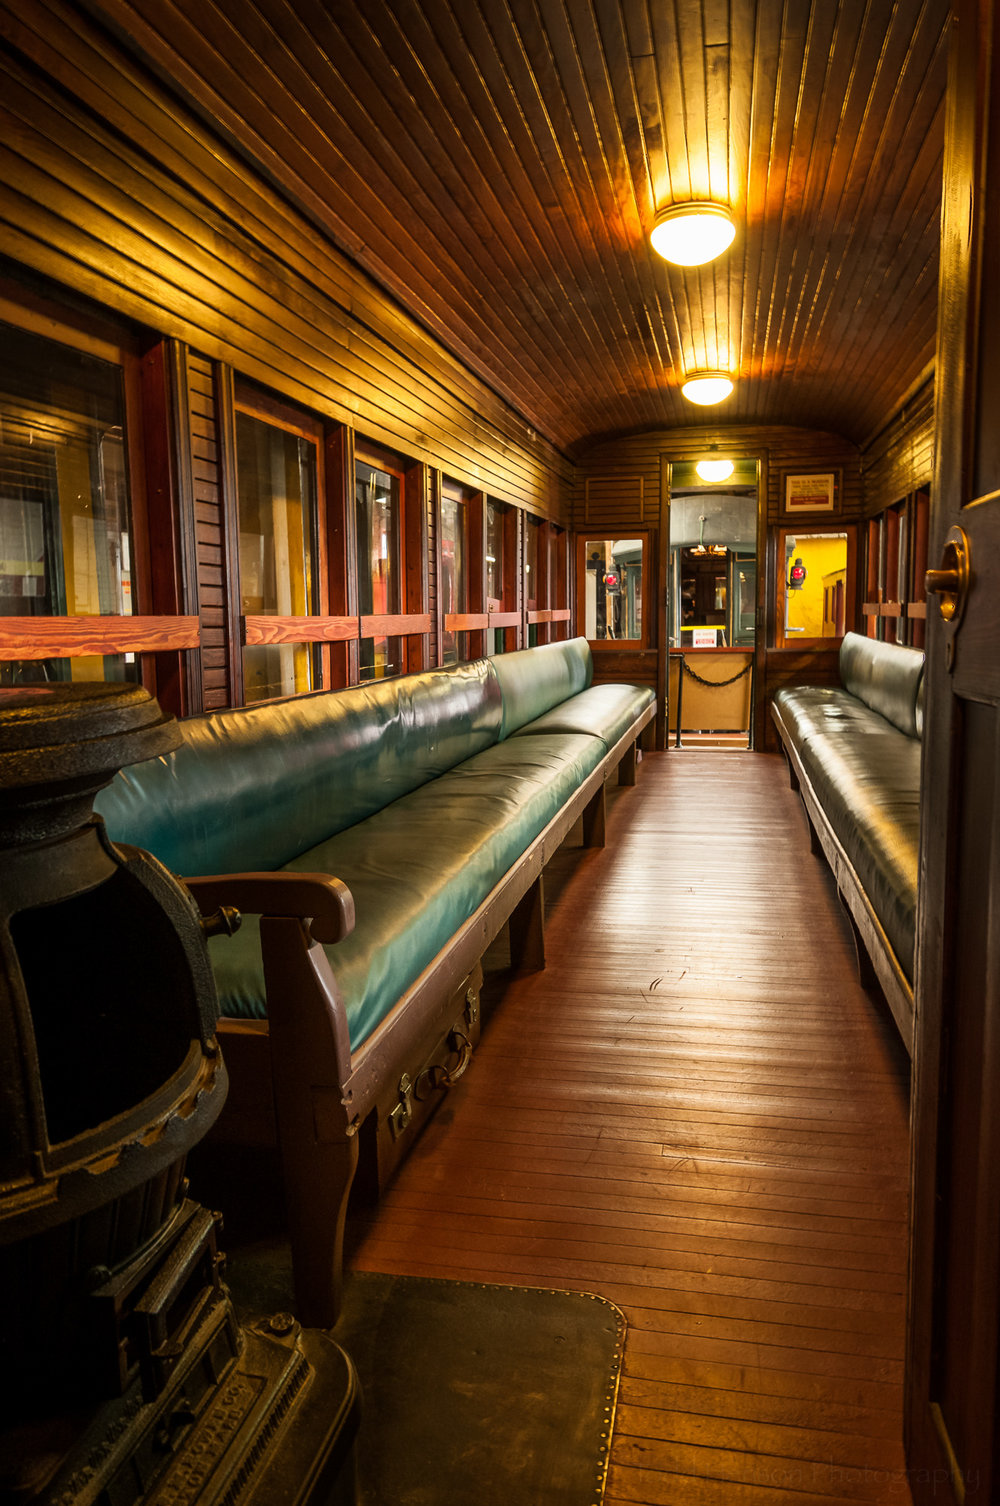 Interior of passenger train with stove (3 image HDR)